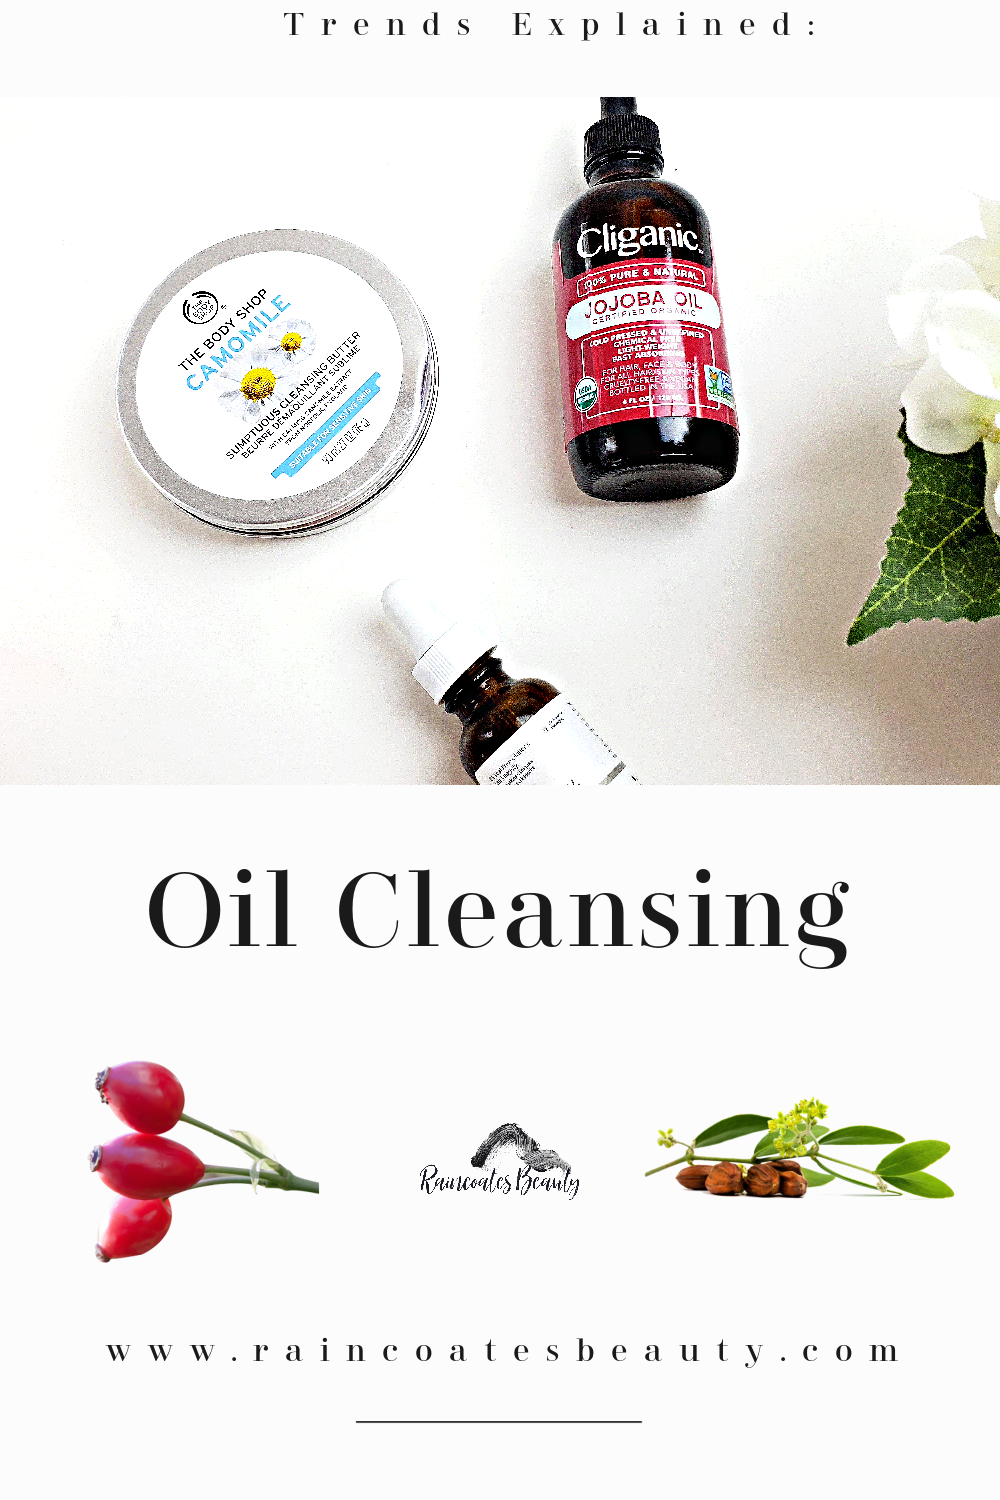 Oil Cleansing 101-Skincare Trend Review